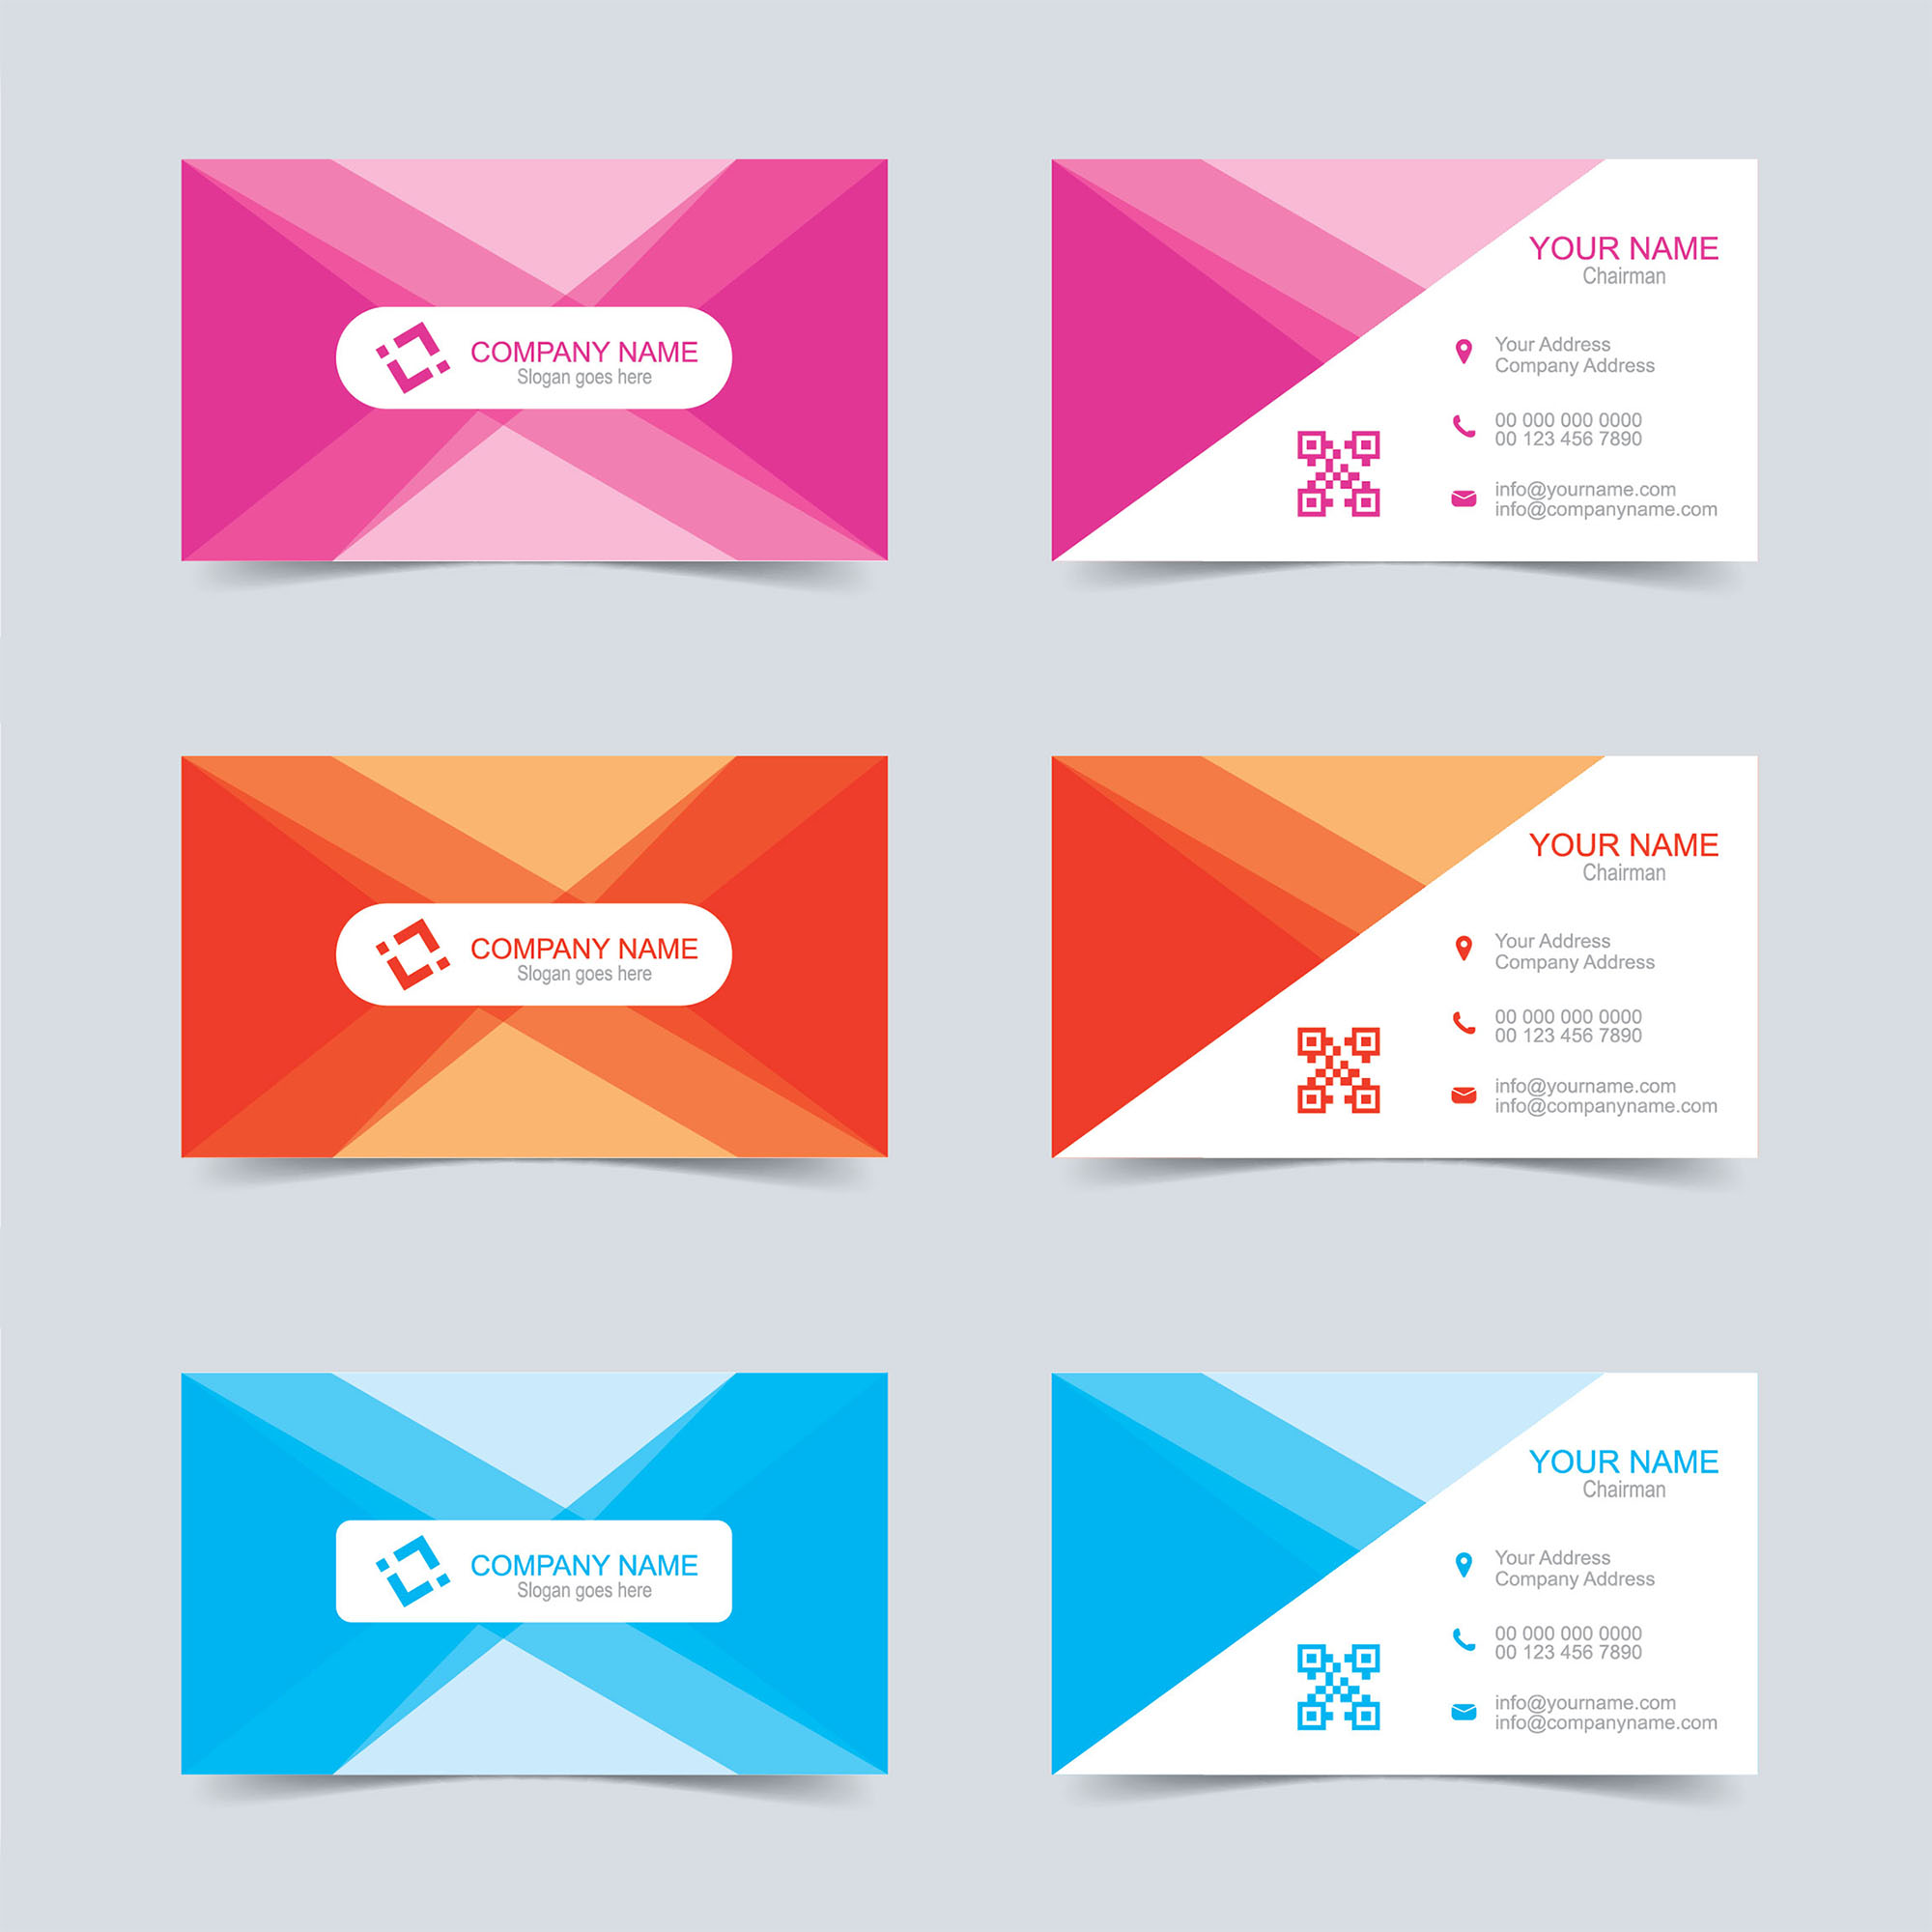 Vector business card template free download wisxi business card business cards business card design business card template design templates cheaphphosting Gallery